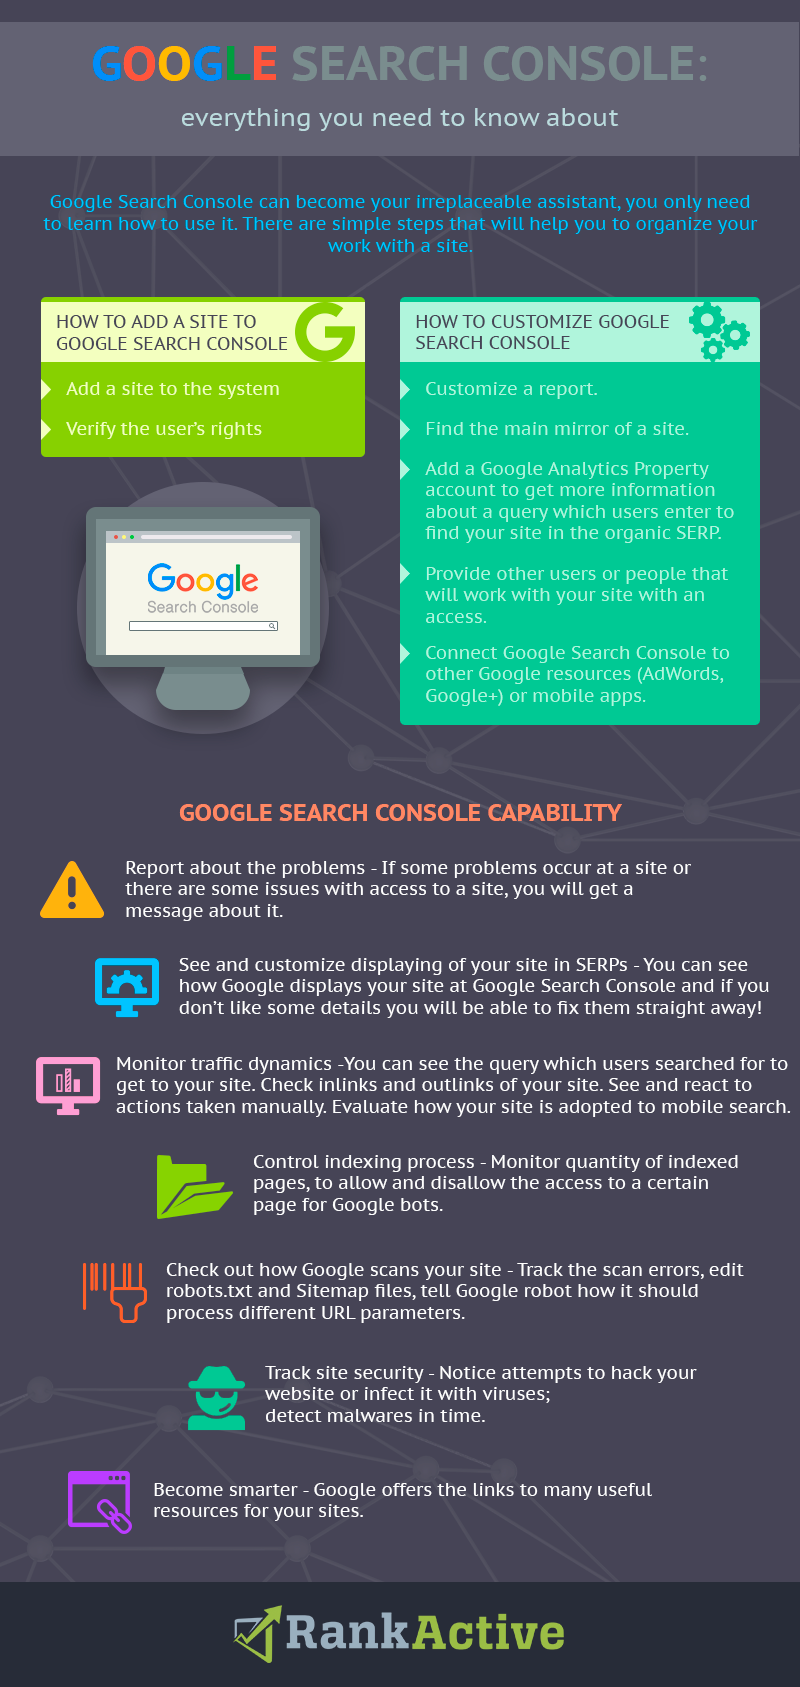 Google Search Console: everything you need to know about